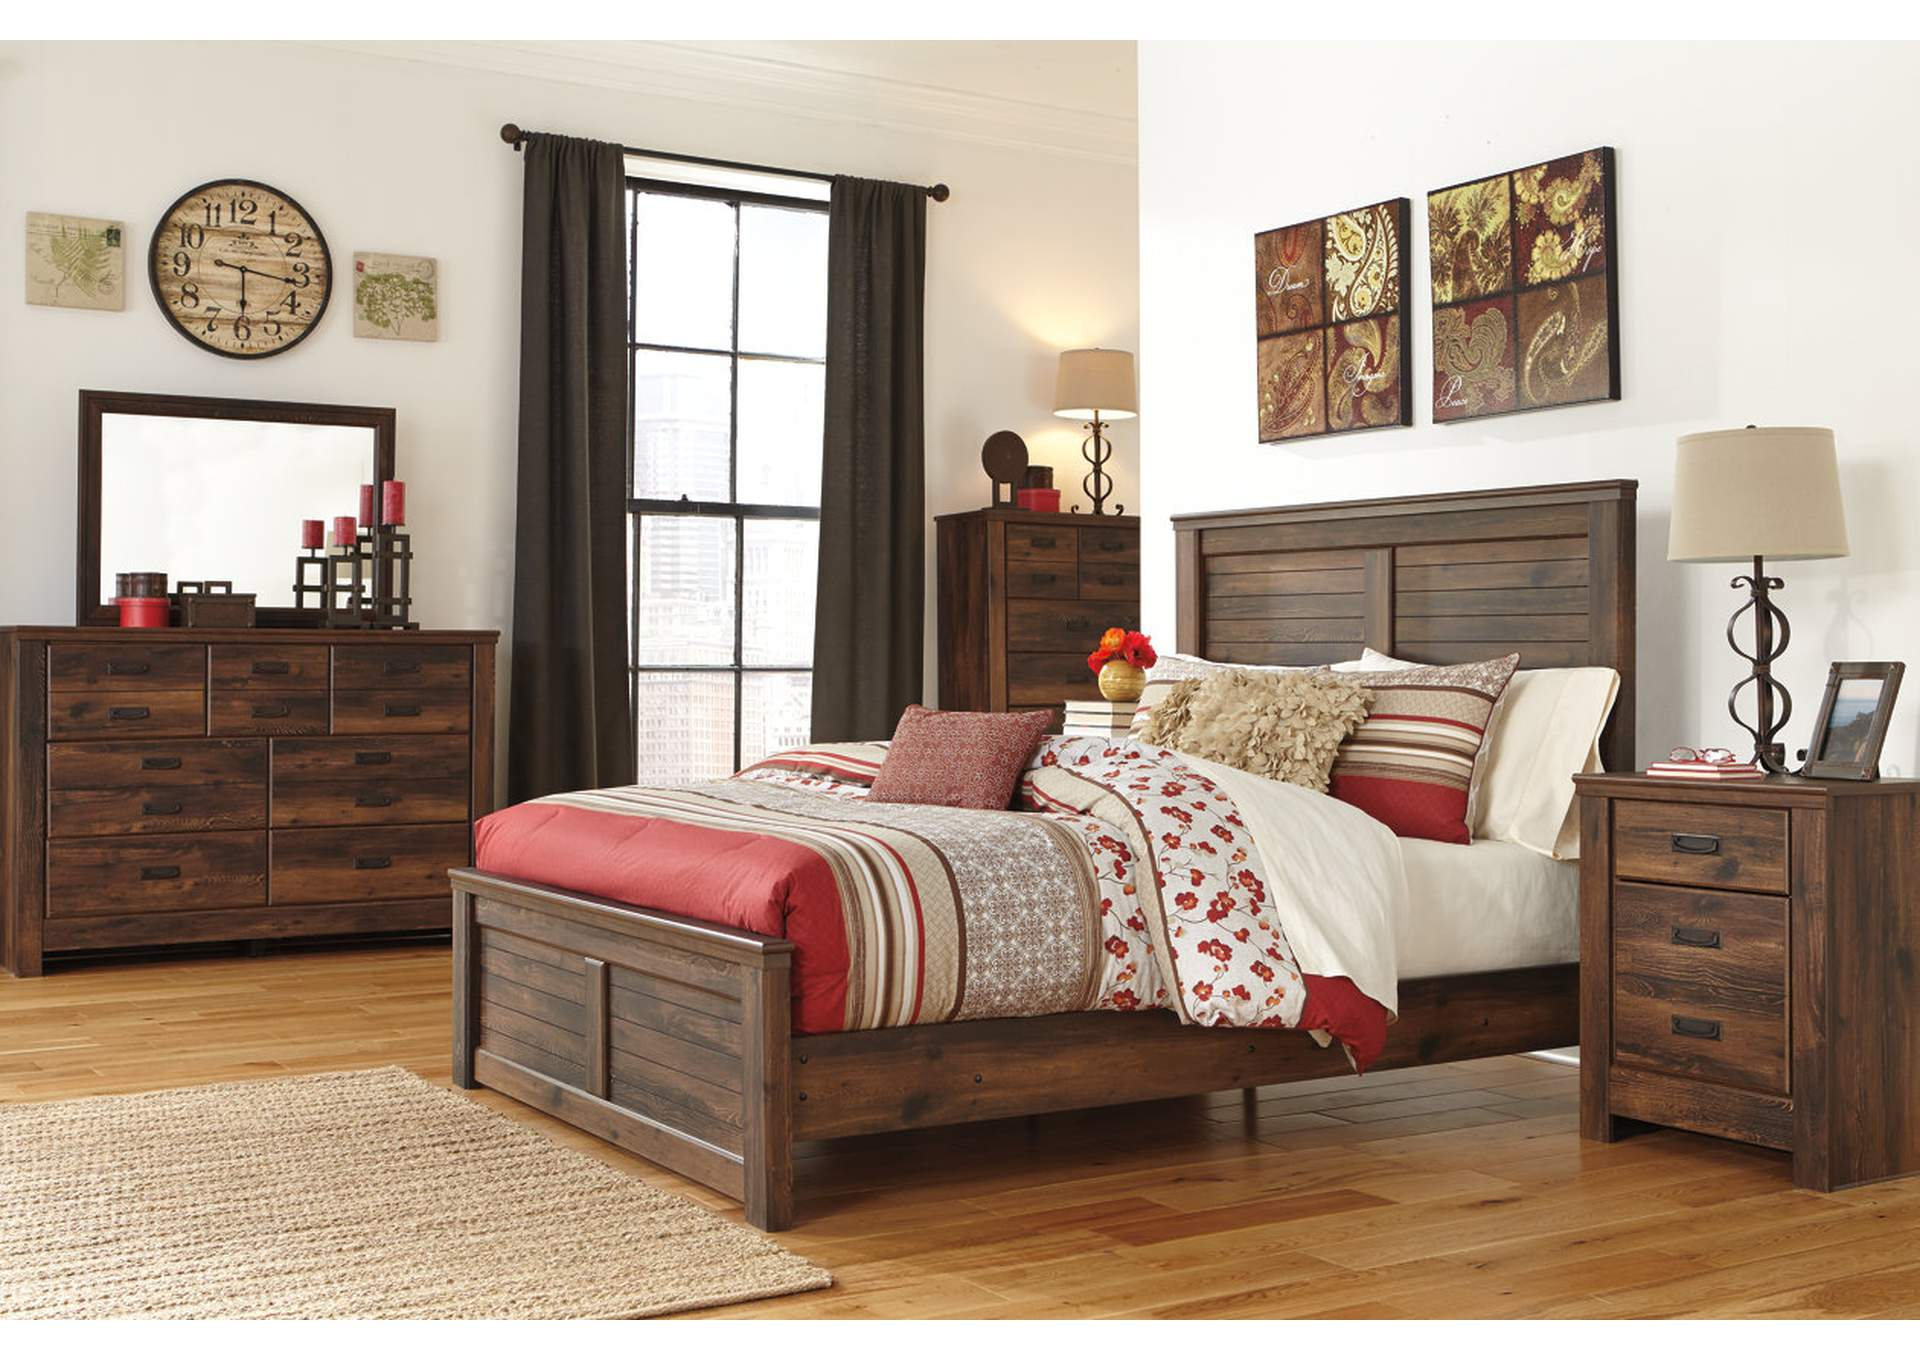 Quinden Queen Panel Bed w/Dresser, Mirror & Nightstand,Signature Design By Ashley